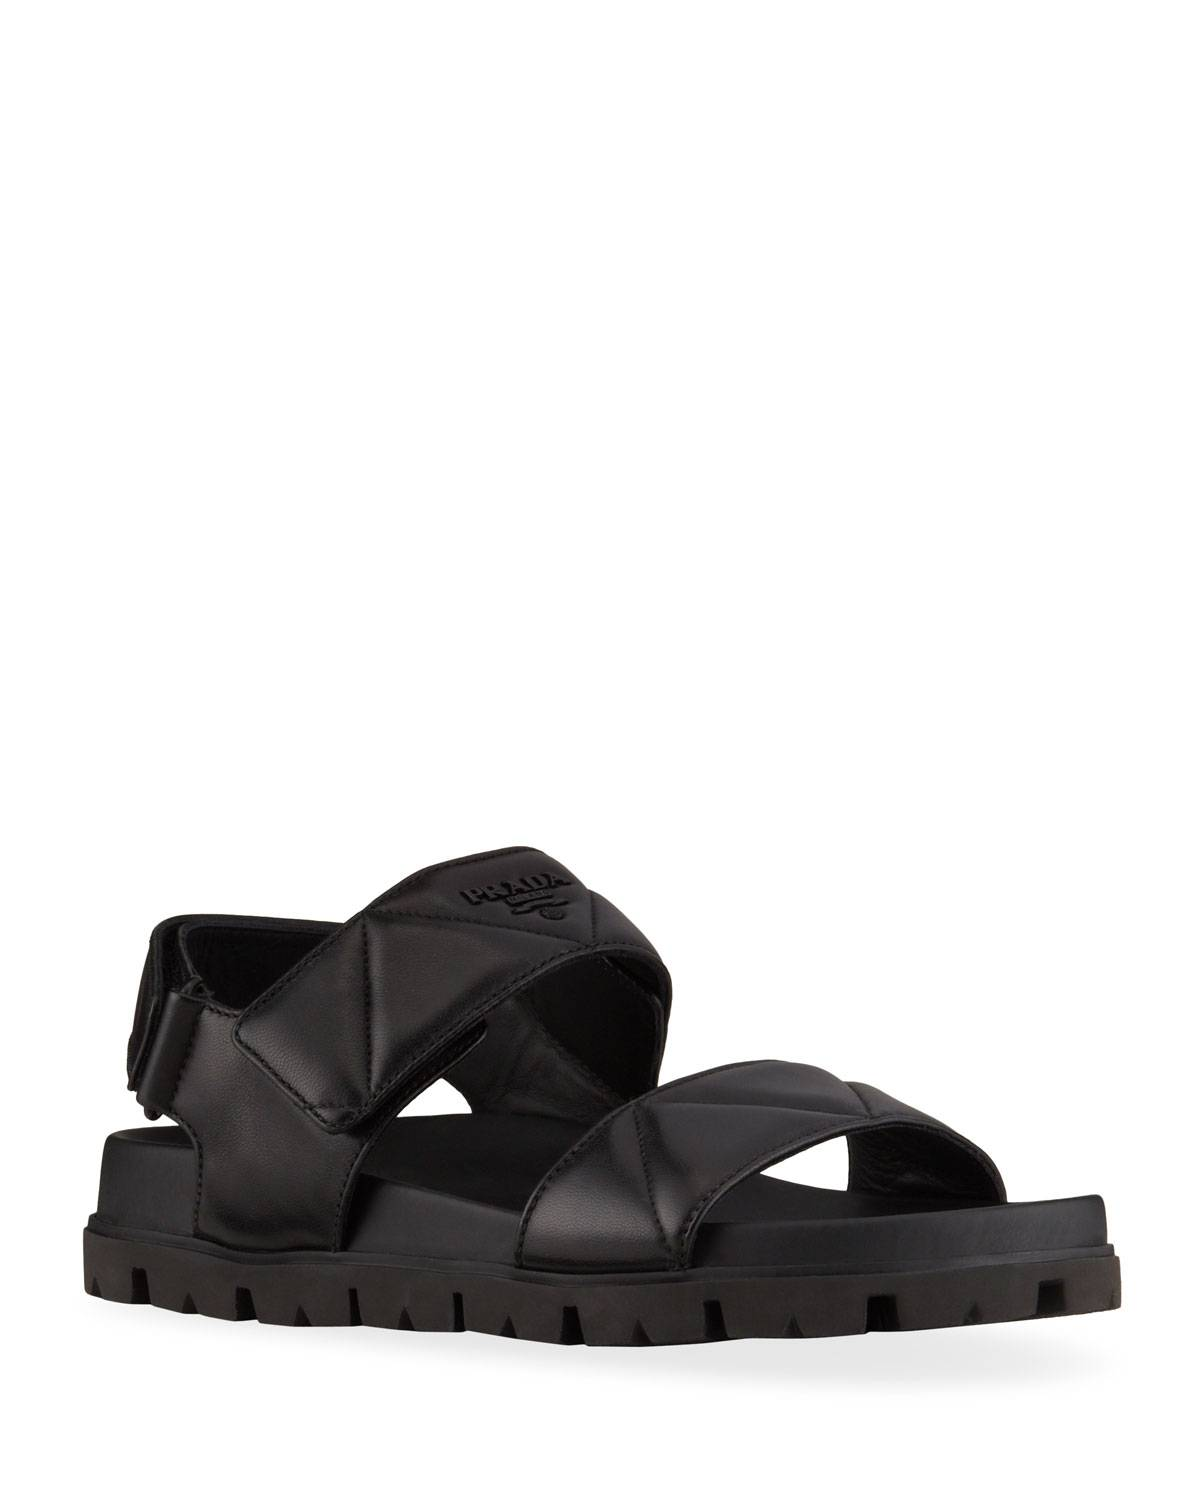 Prada Padded Leather Sport Sandals - Size: 10B / 40EU